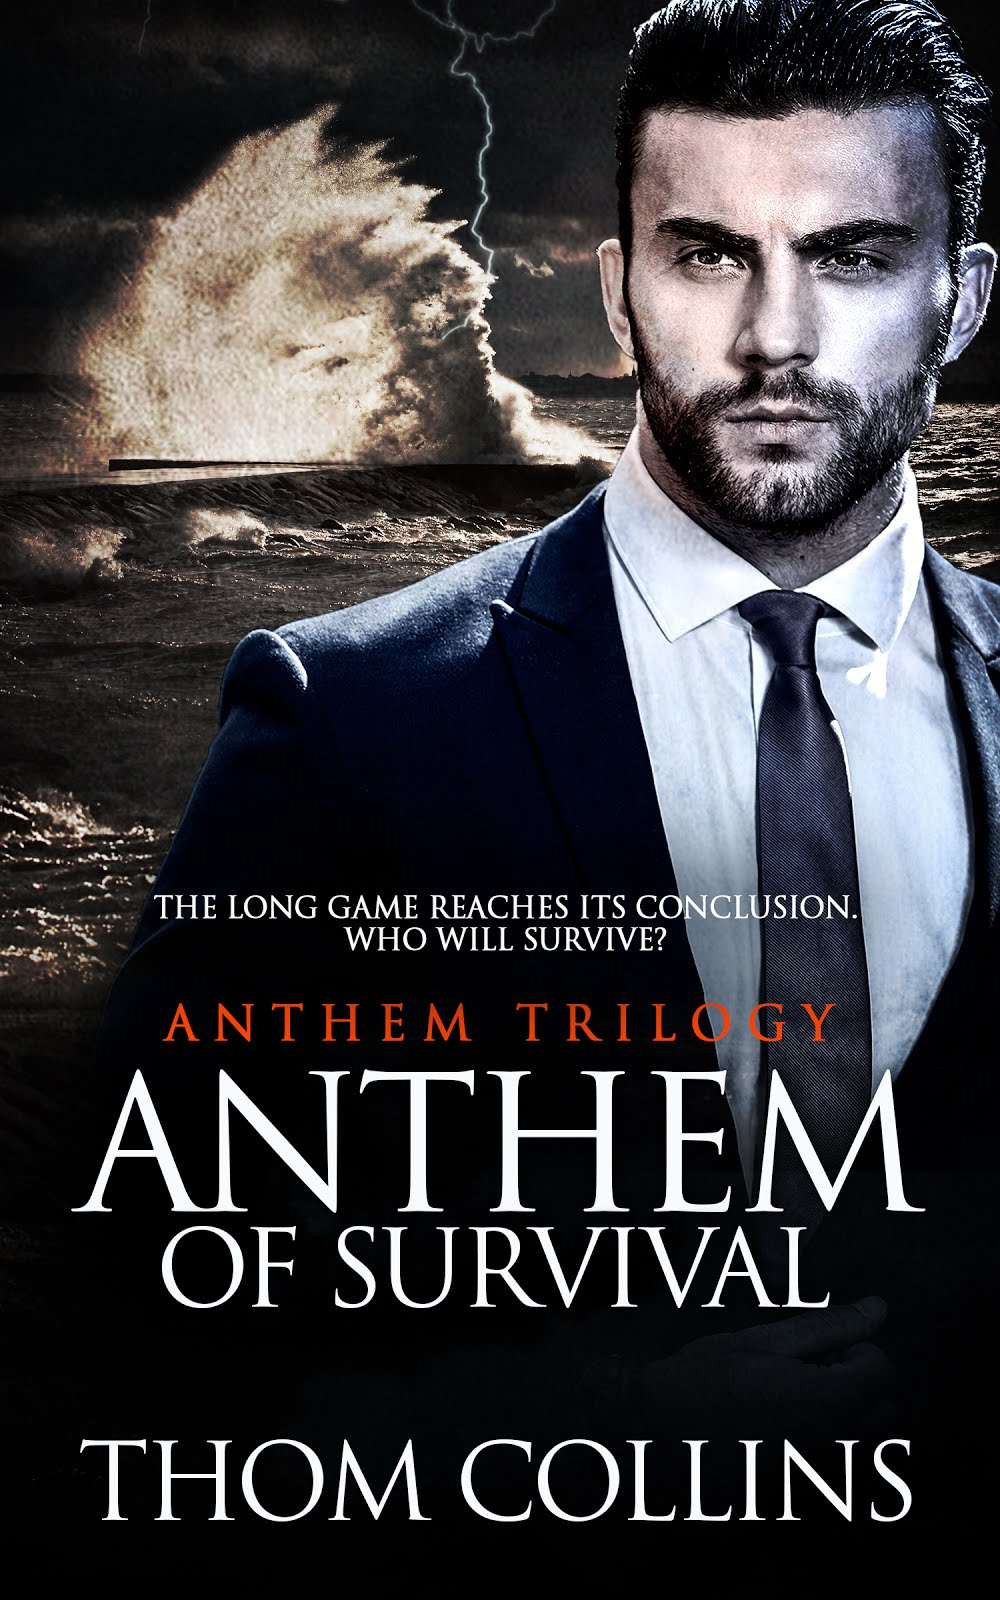 ANTHEM OF SURVIVAL